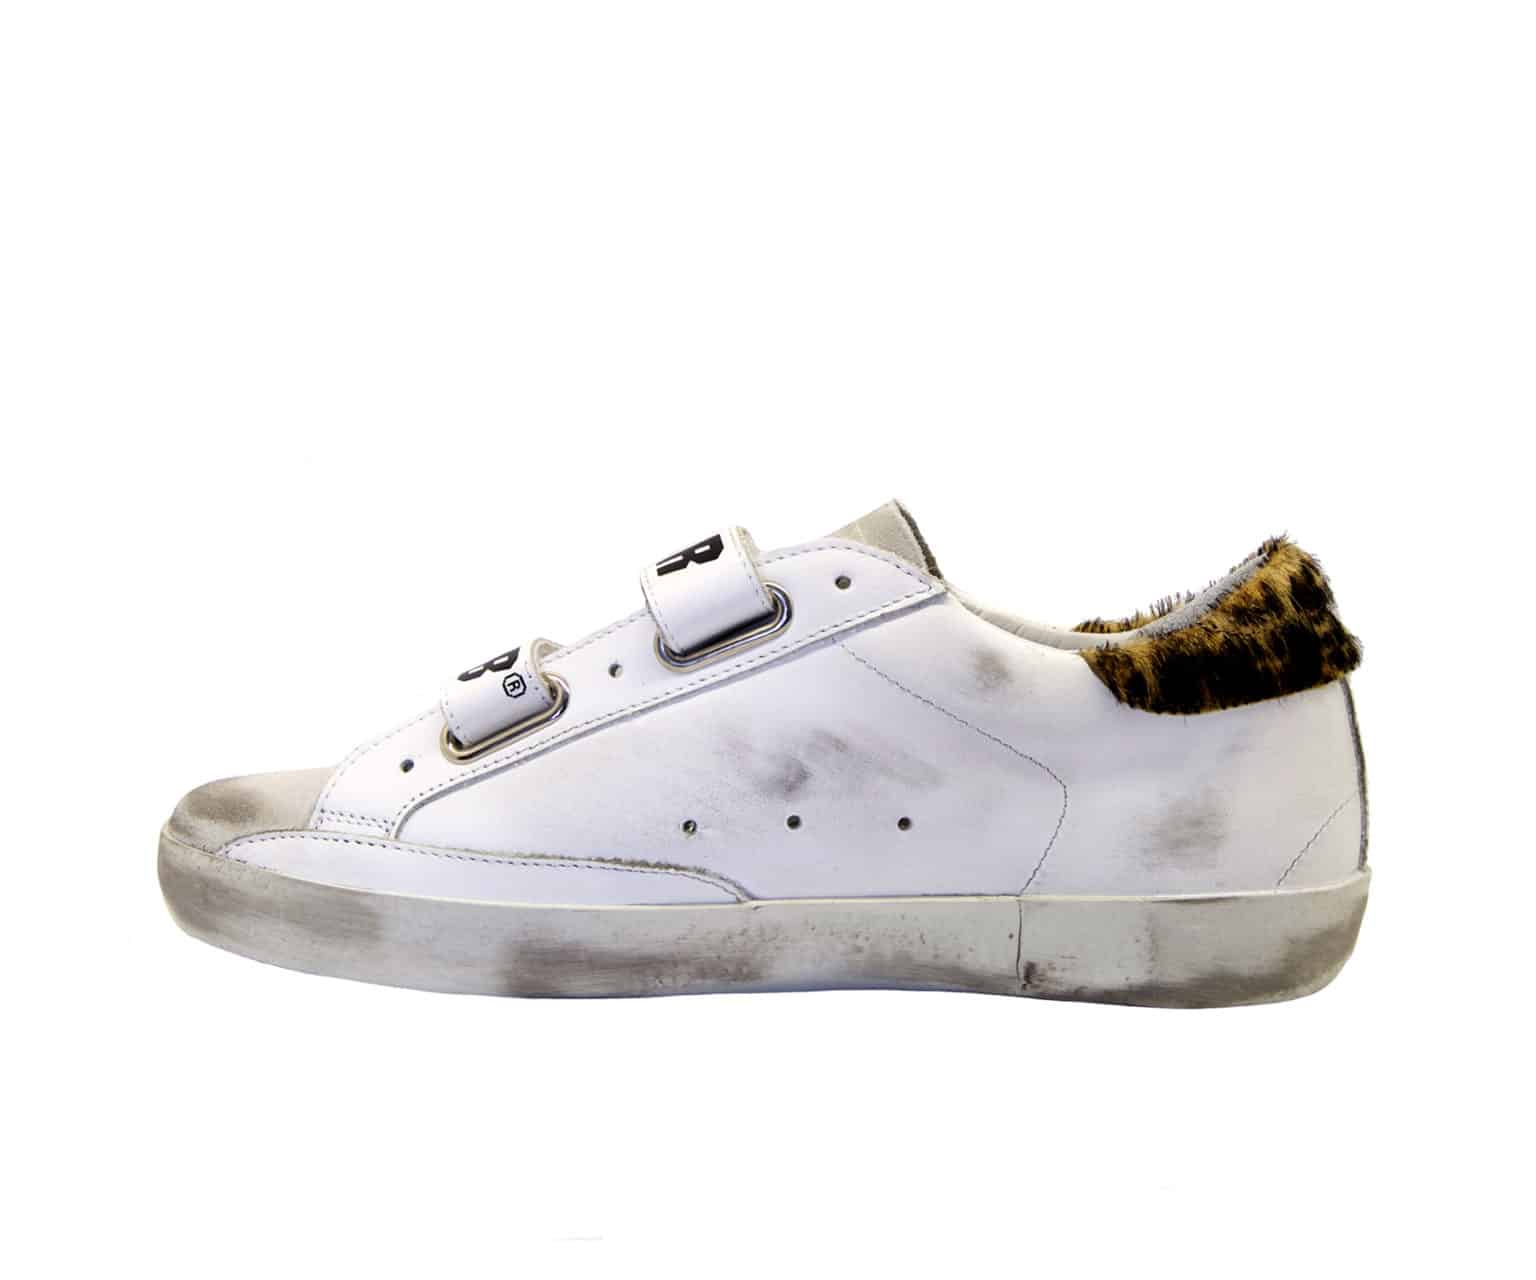 GOLDEN GOOSE DONNA Donna SNEAKERS OLD SCHOOL BIANCO MACULATO 36, 37-2, 38-2, 39-2, 40, 35 immagine n. 3/4